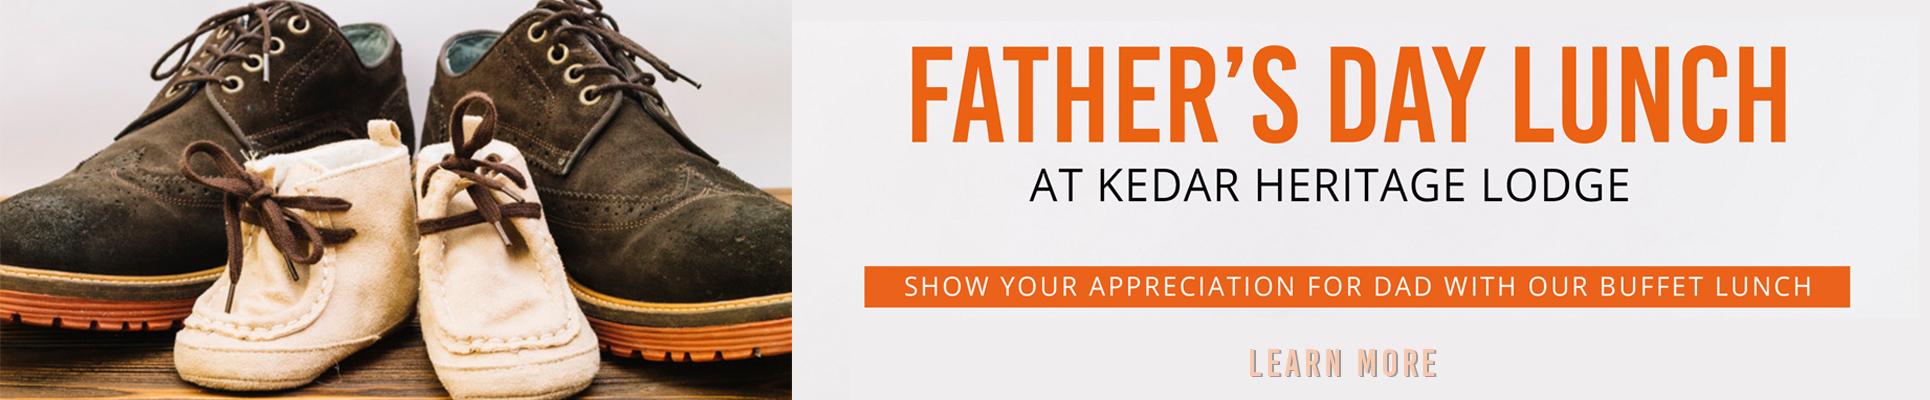 Join us for Father's Day lunch at Kedar Heritage Lodge, Rustenburg